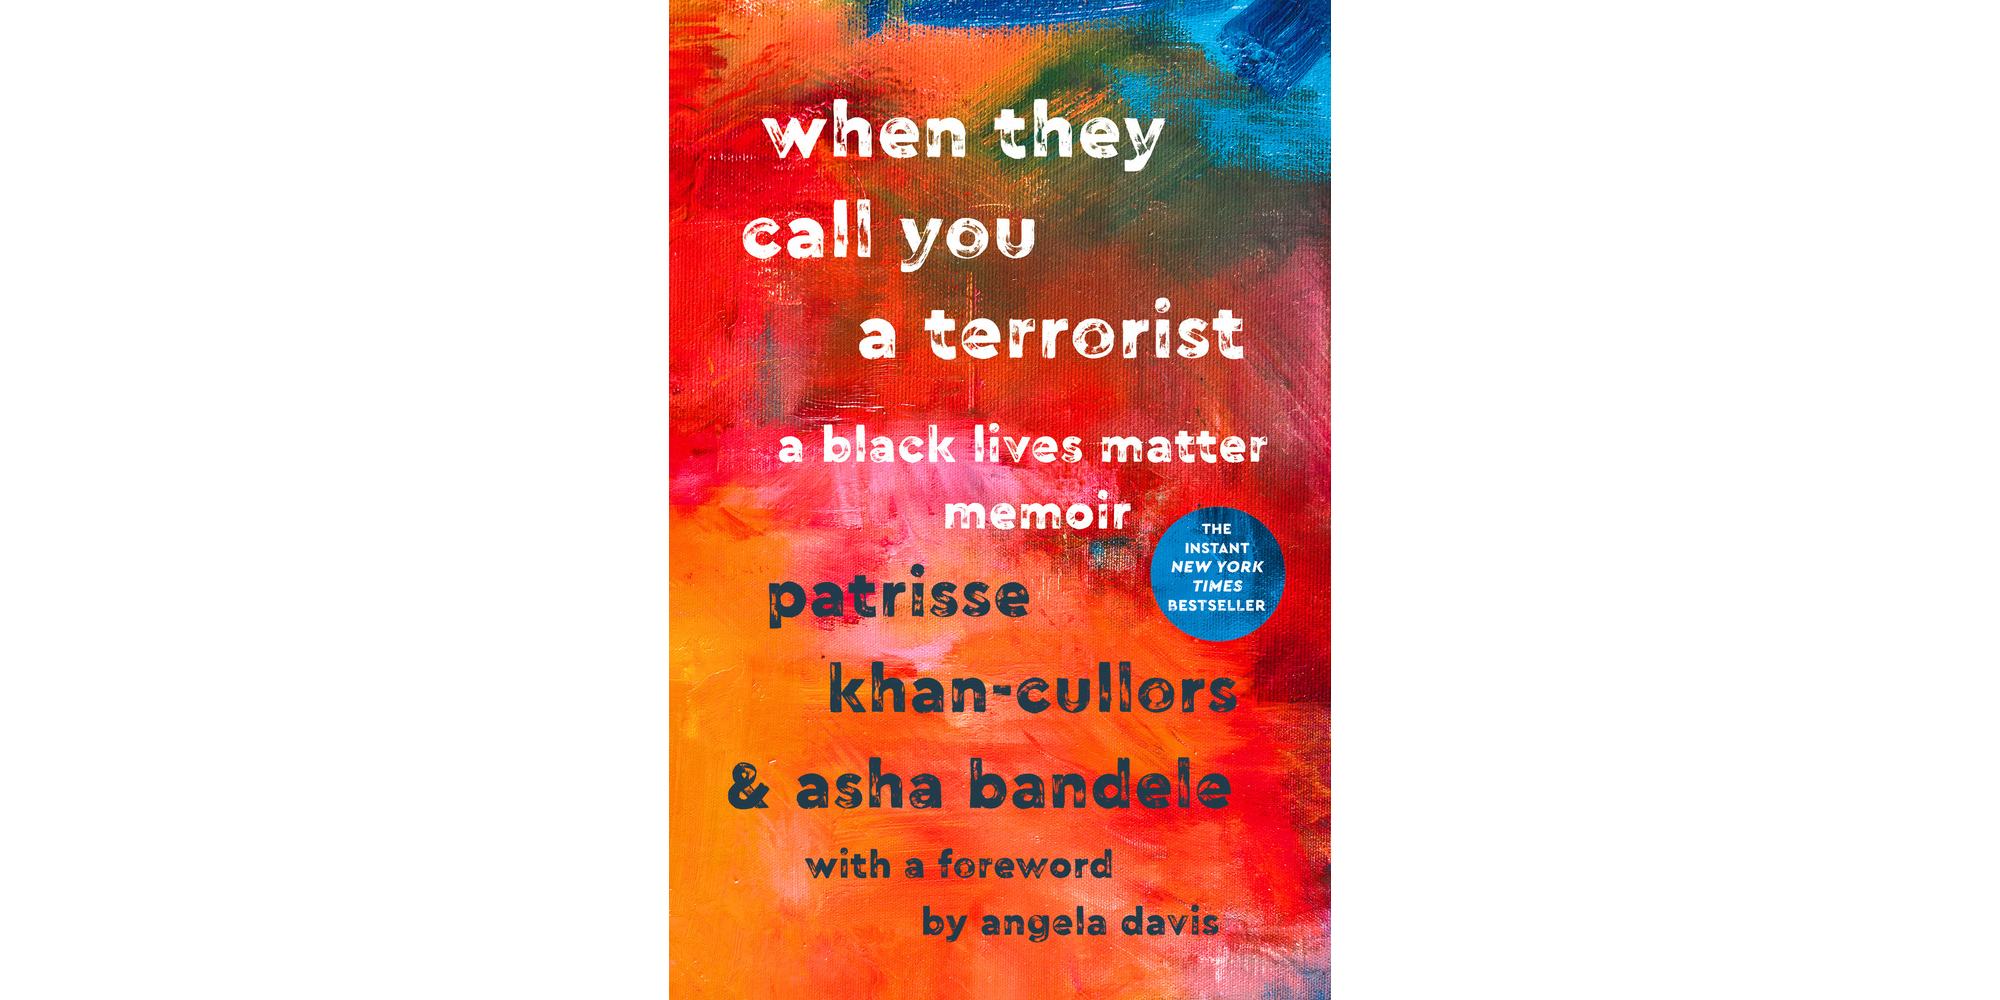 Cover of When They Call You a Terrorist, by Patrisse Khan-Cullors and Asha Bandele